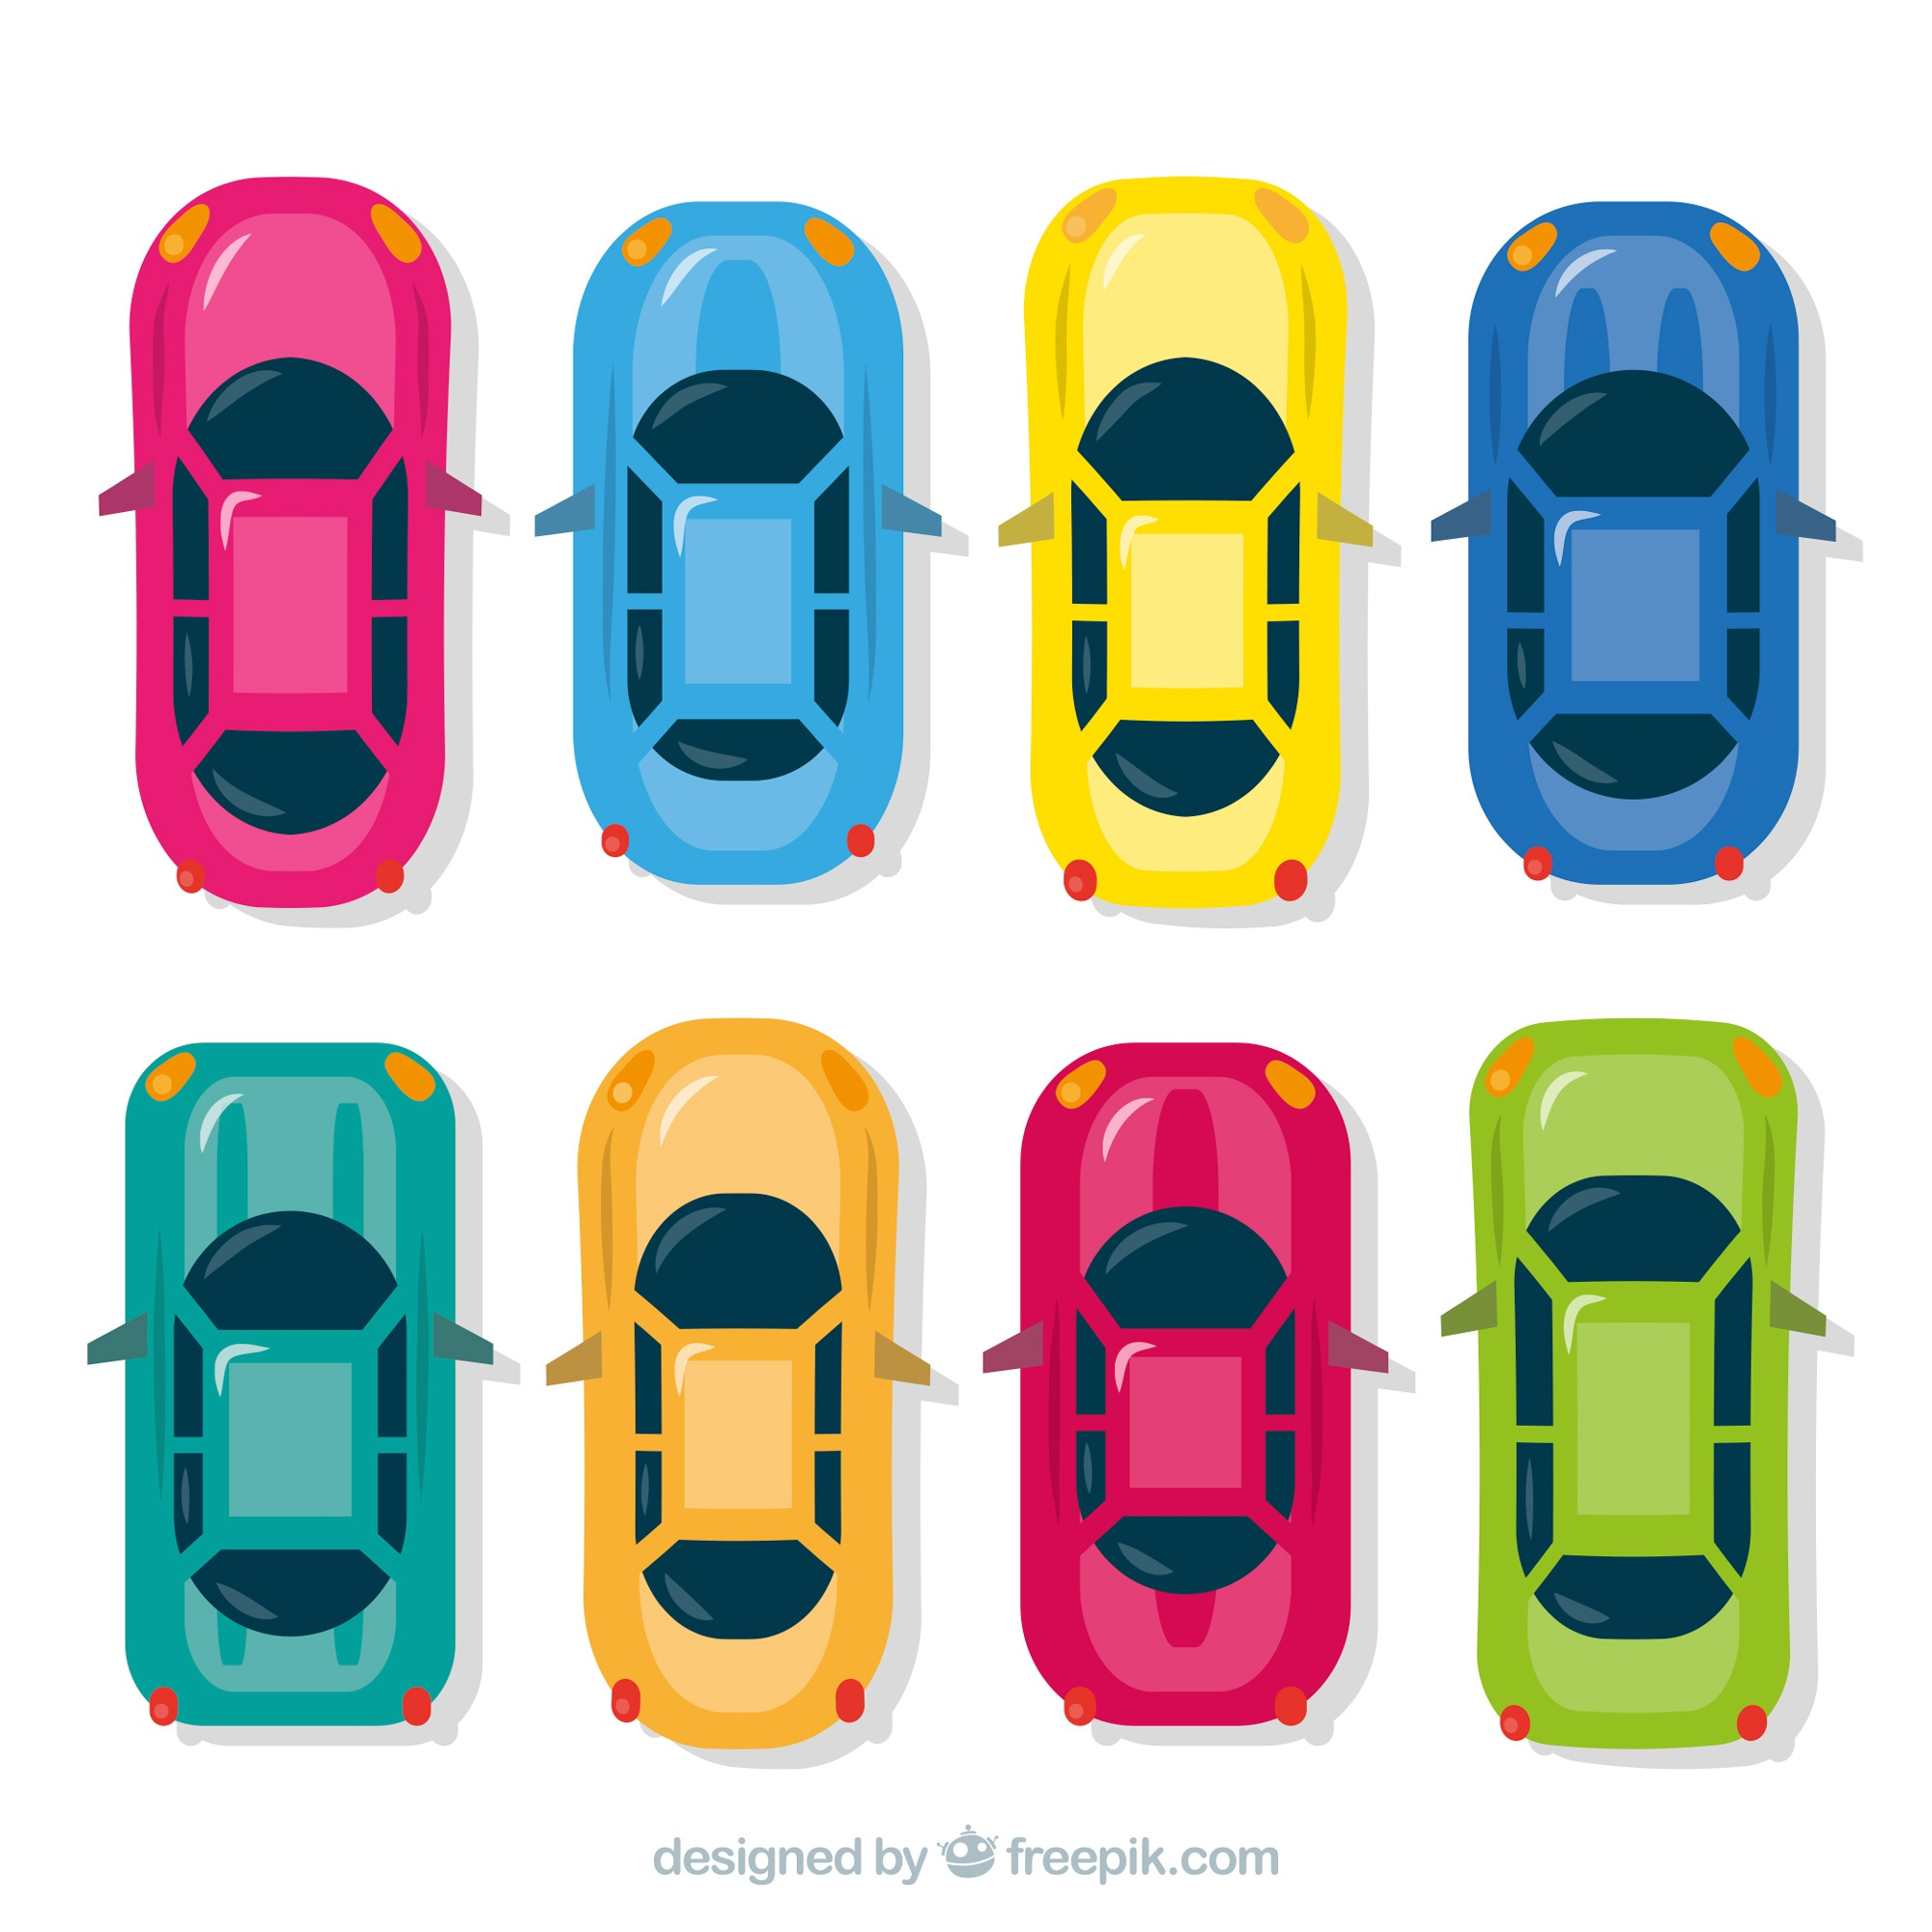 Top view of flat sports cars